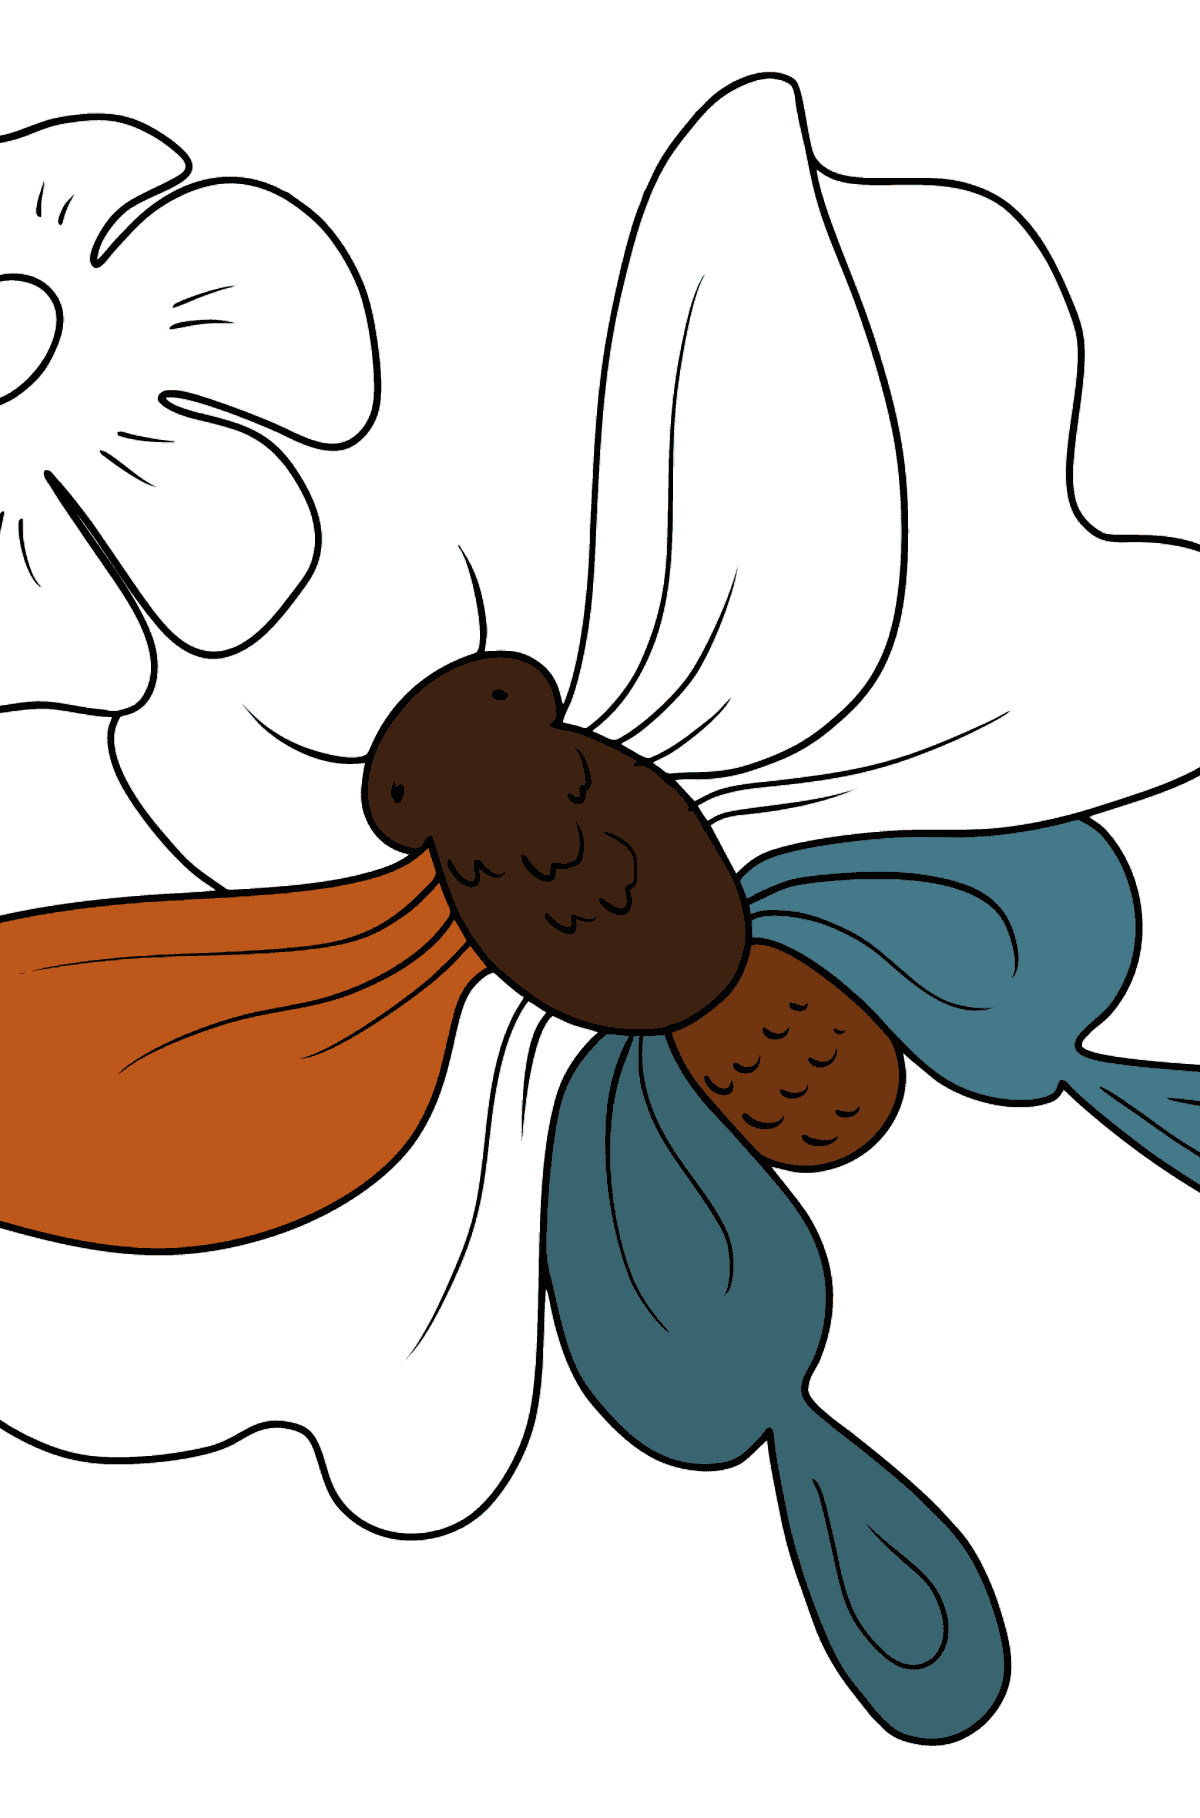 Butterfly on a Flower coloring page - Coloring Pages for Kids